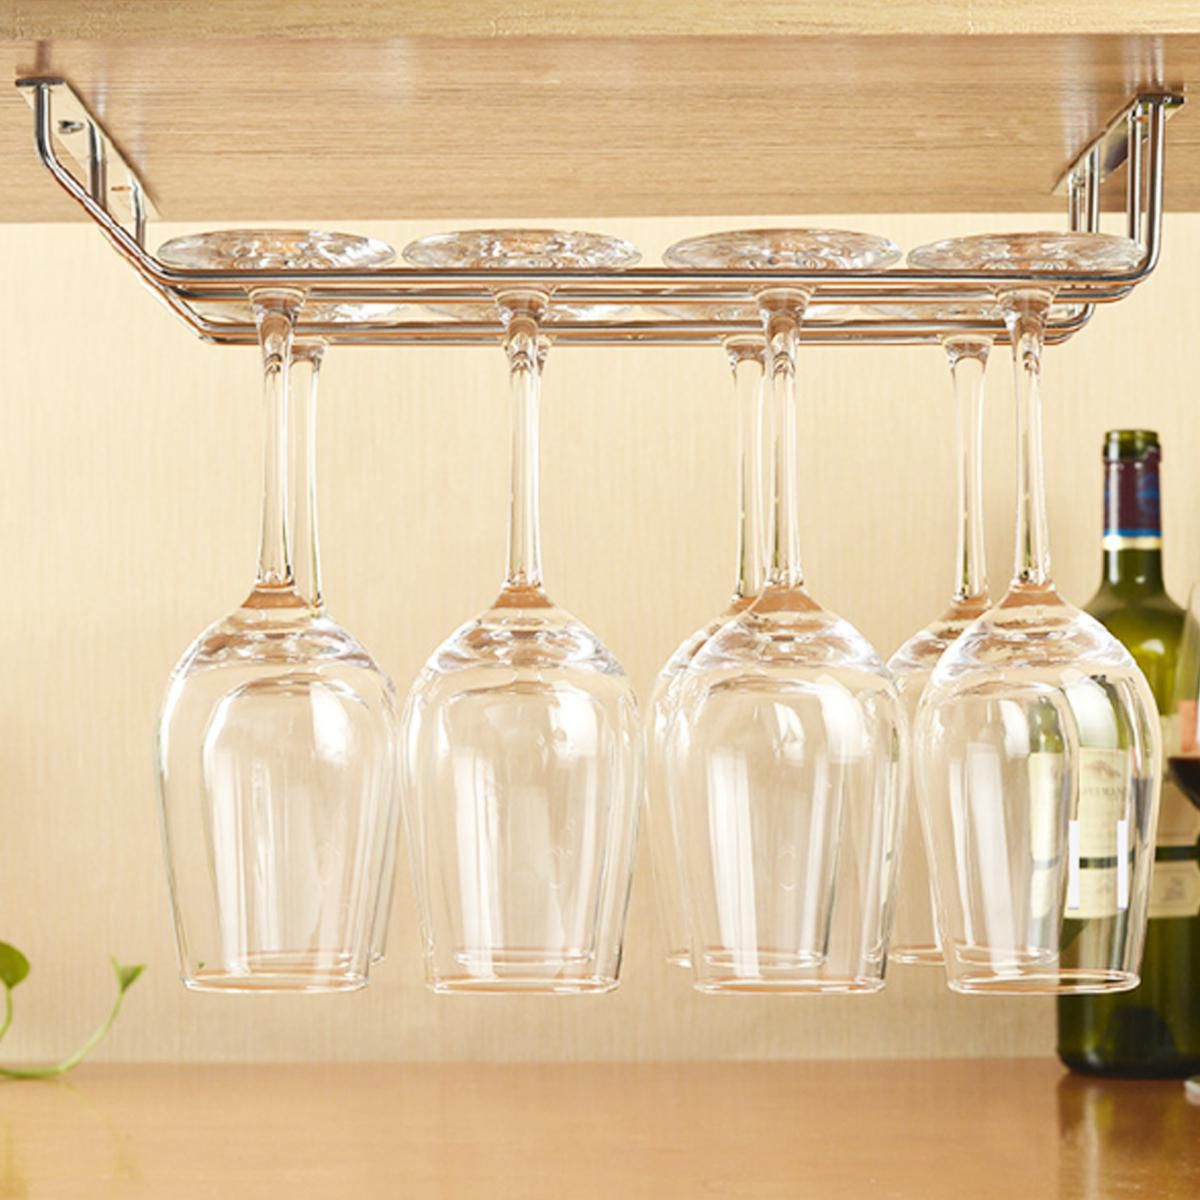 Metal Stainless Steel 2 Rows Stemware Wine Cup Glass Bar Holder Storage Rack Hanger Bar Accessories Home Kitchen Organizer Buy Online At Best Price In India Snapdeal